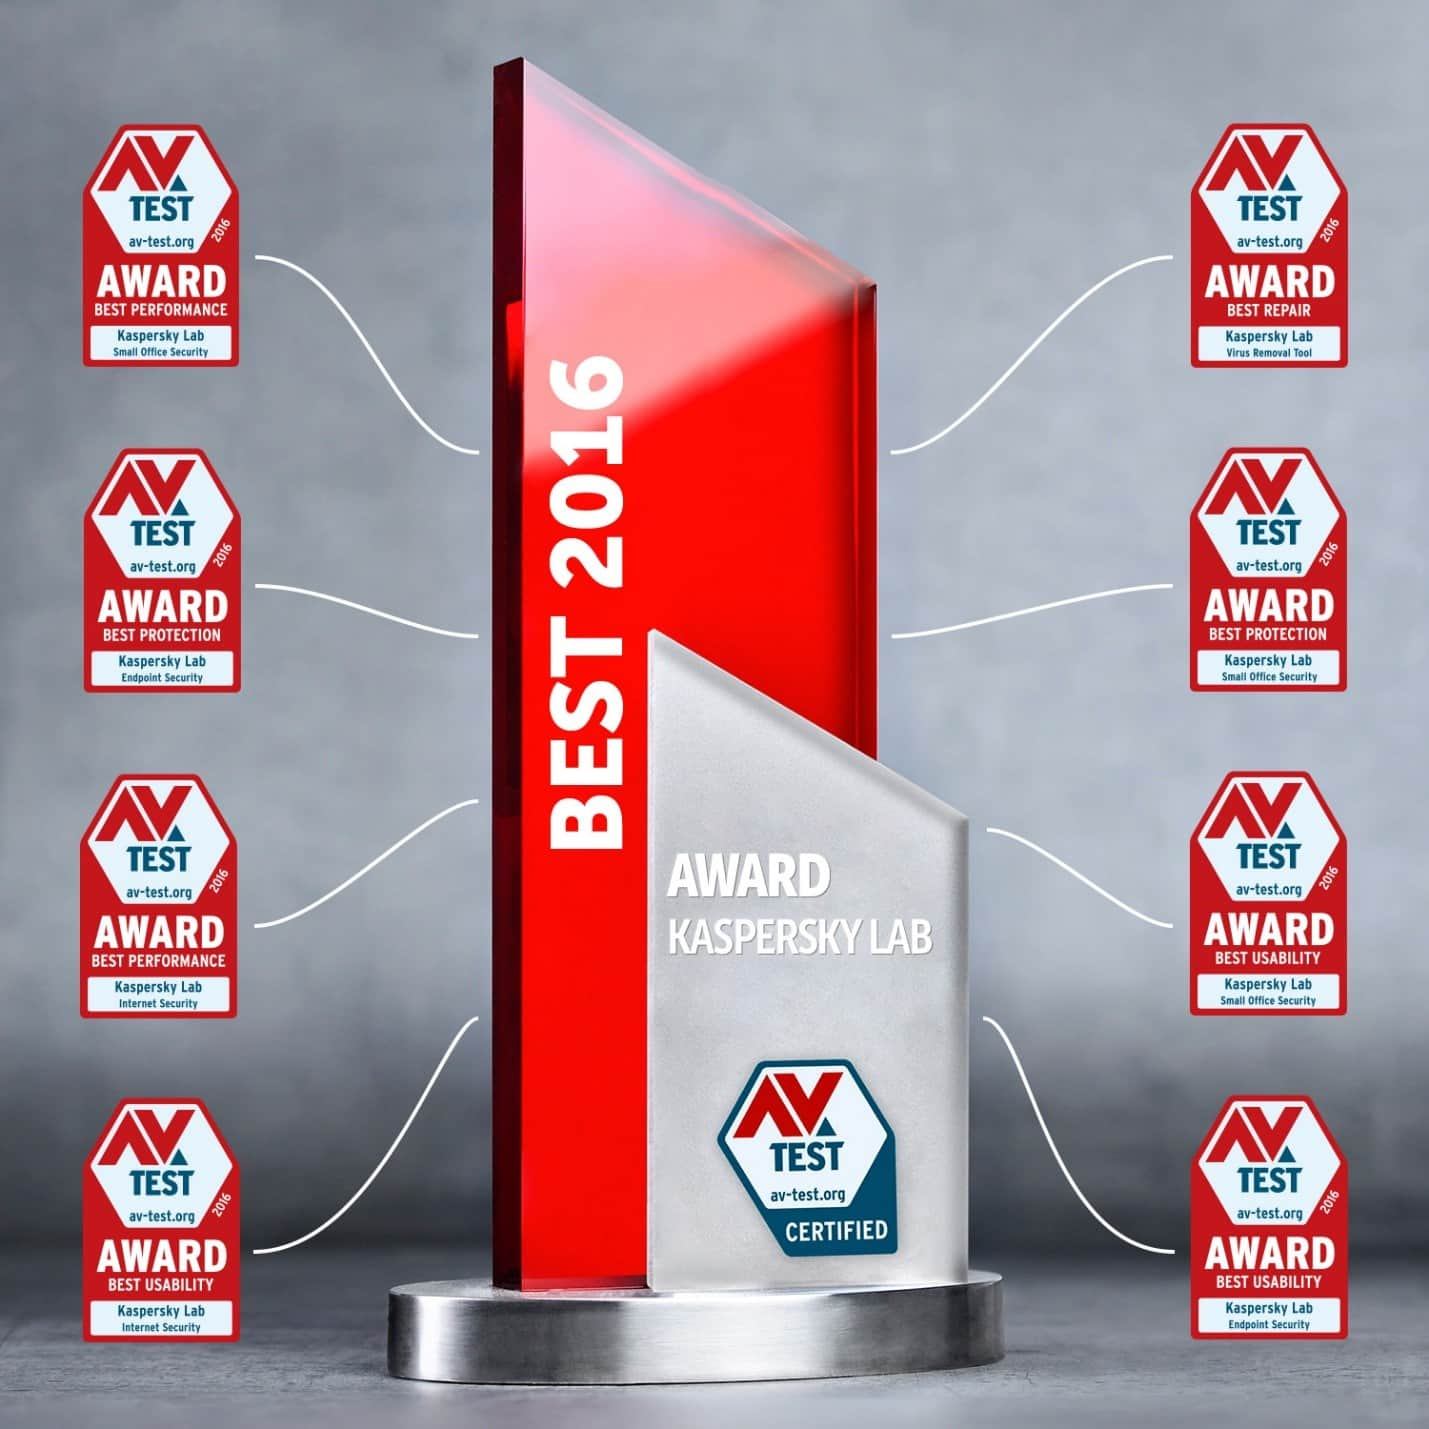 kaspersky-labs-8-av-test-awards